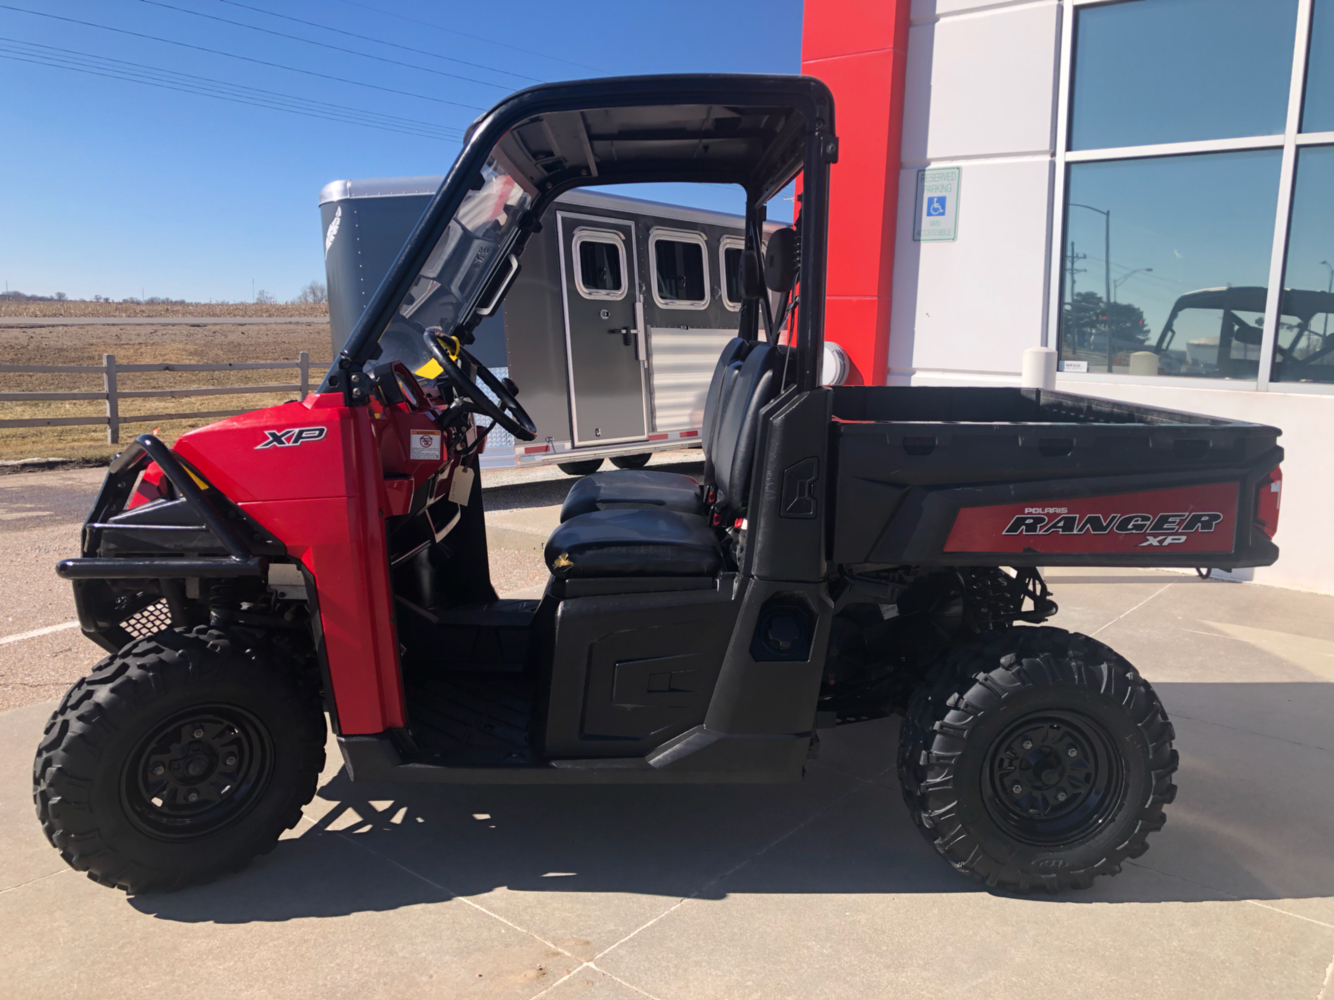 2013 Polaris Ranger XP® 900 in Roca, Nebraska - Photo 1